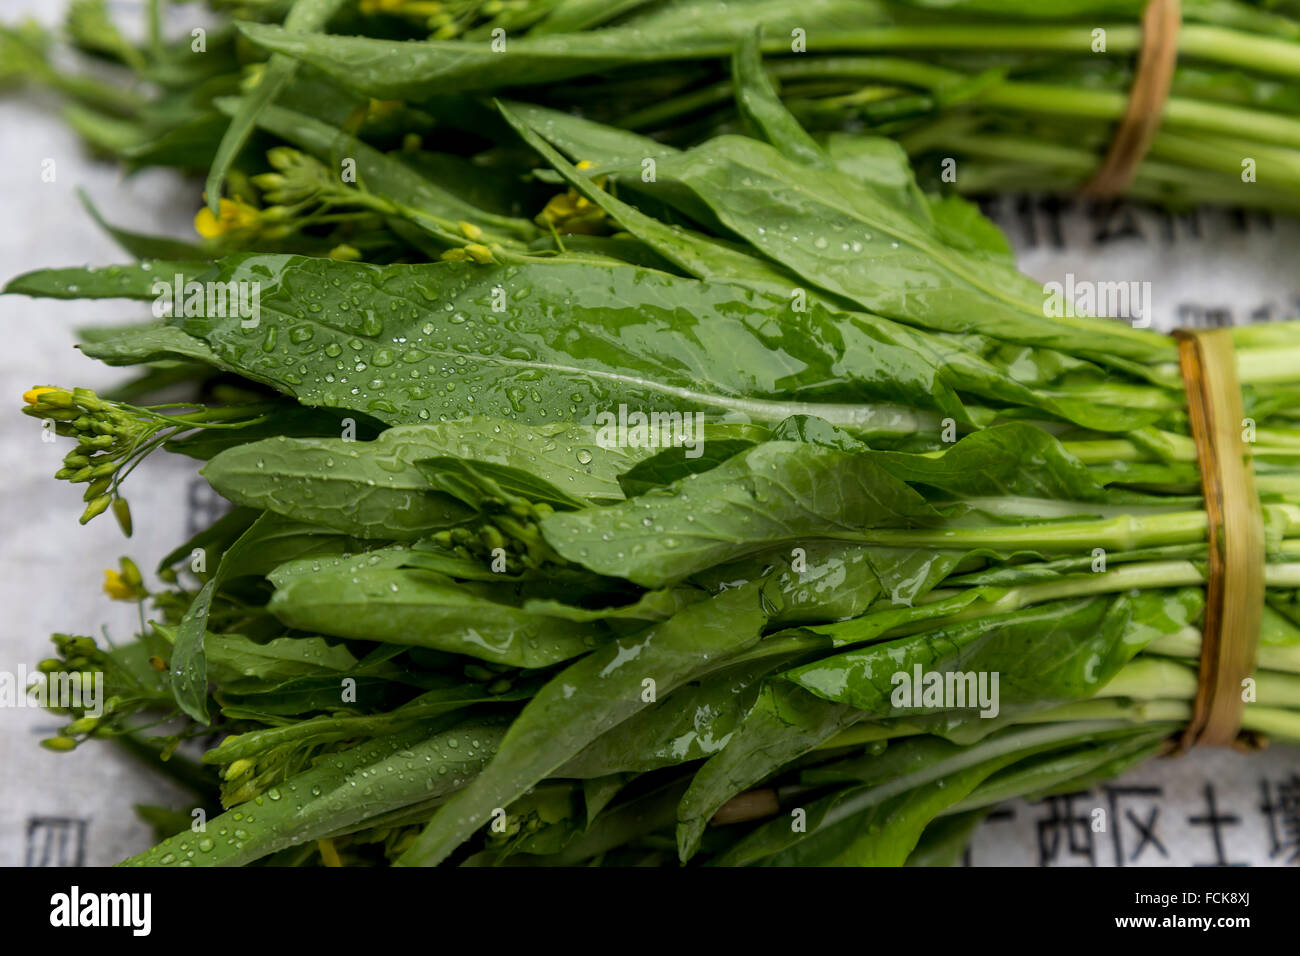 Green leafy vegetables in a market in Yangshuo, China. - Stock Image